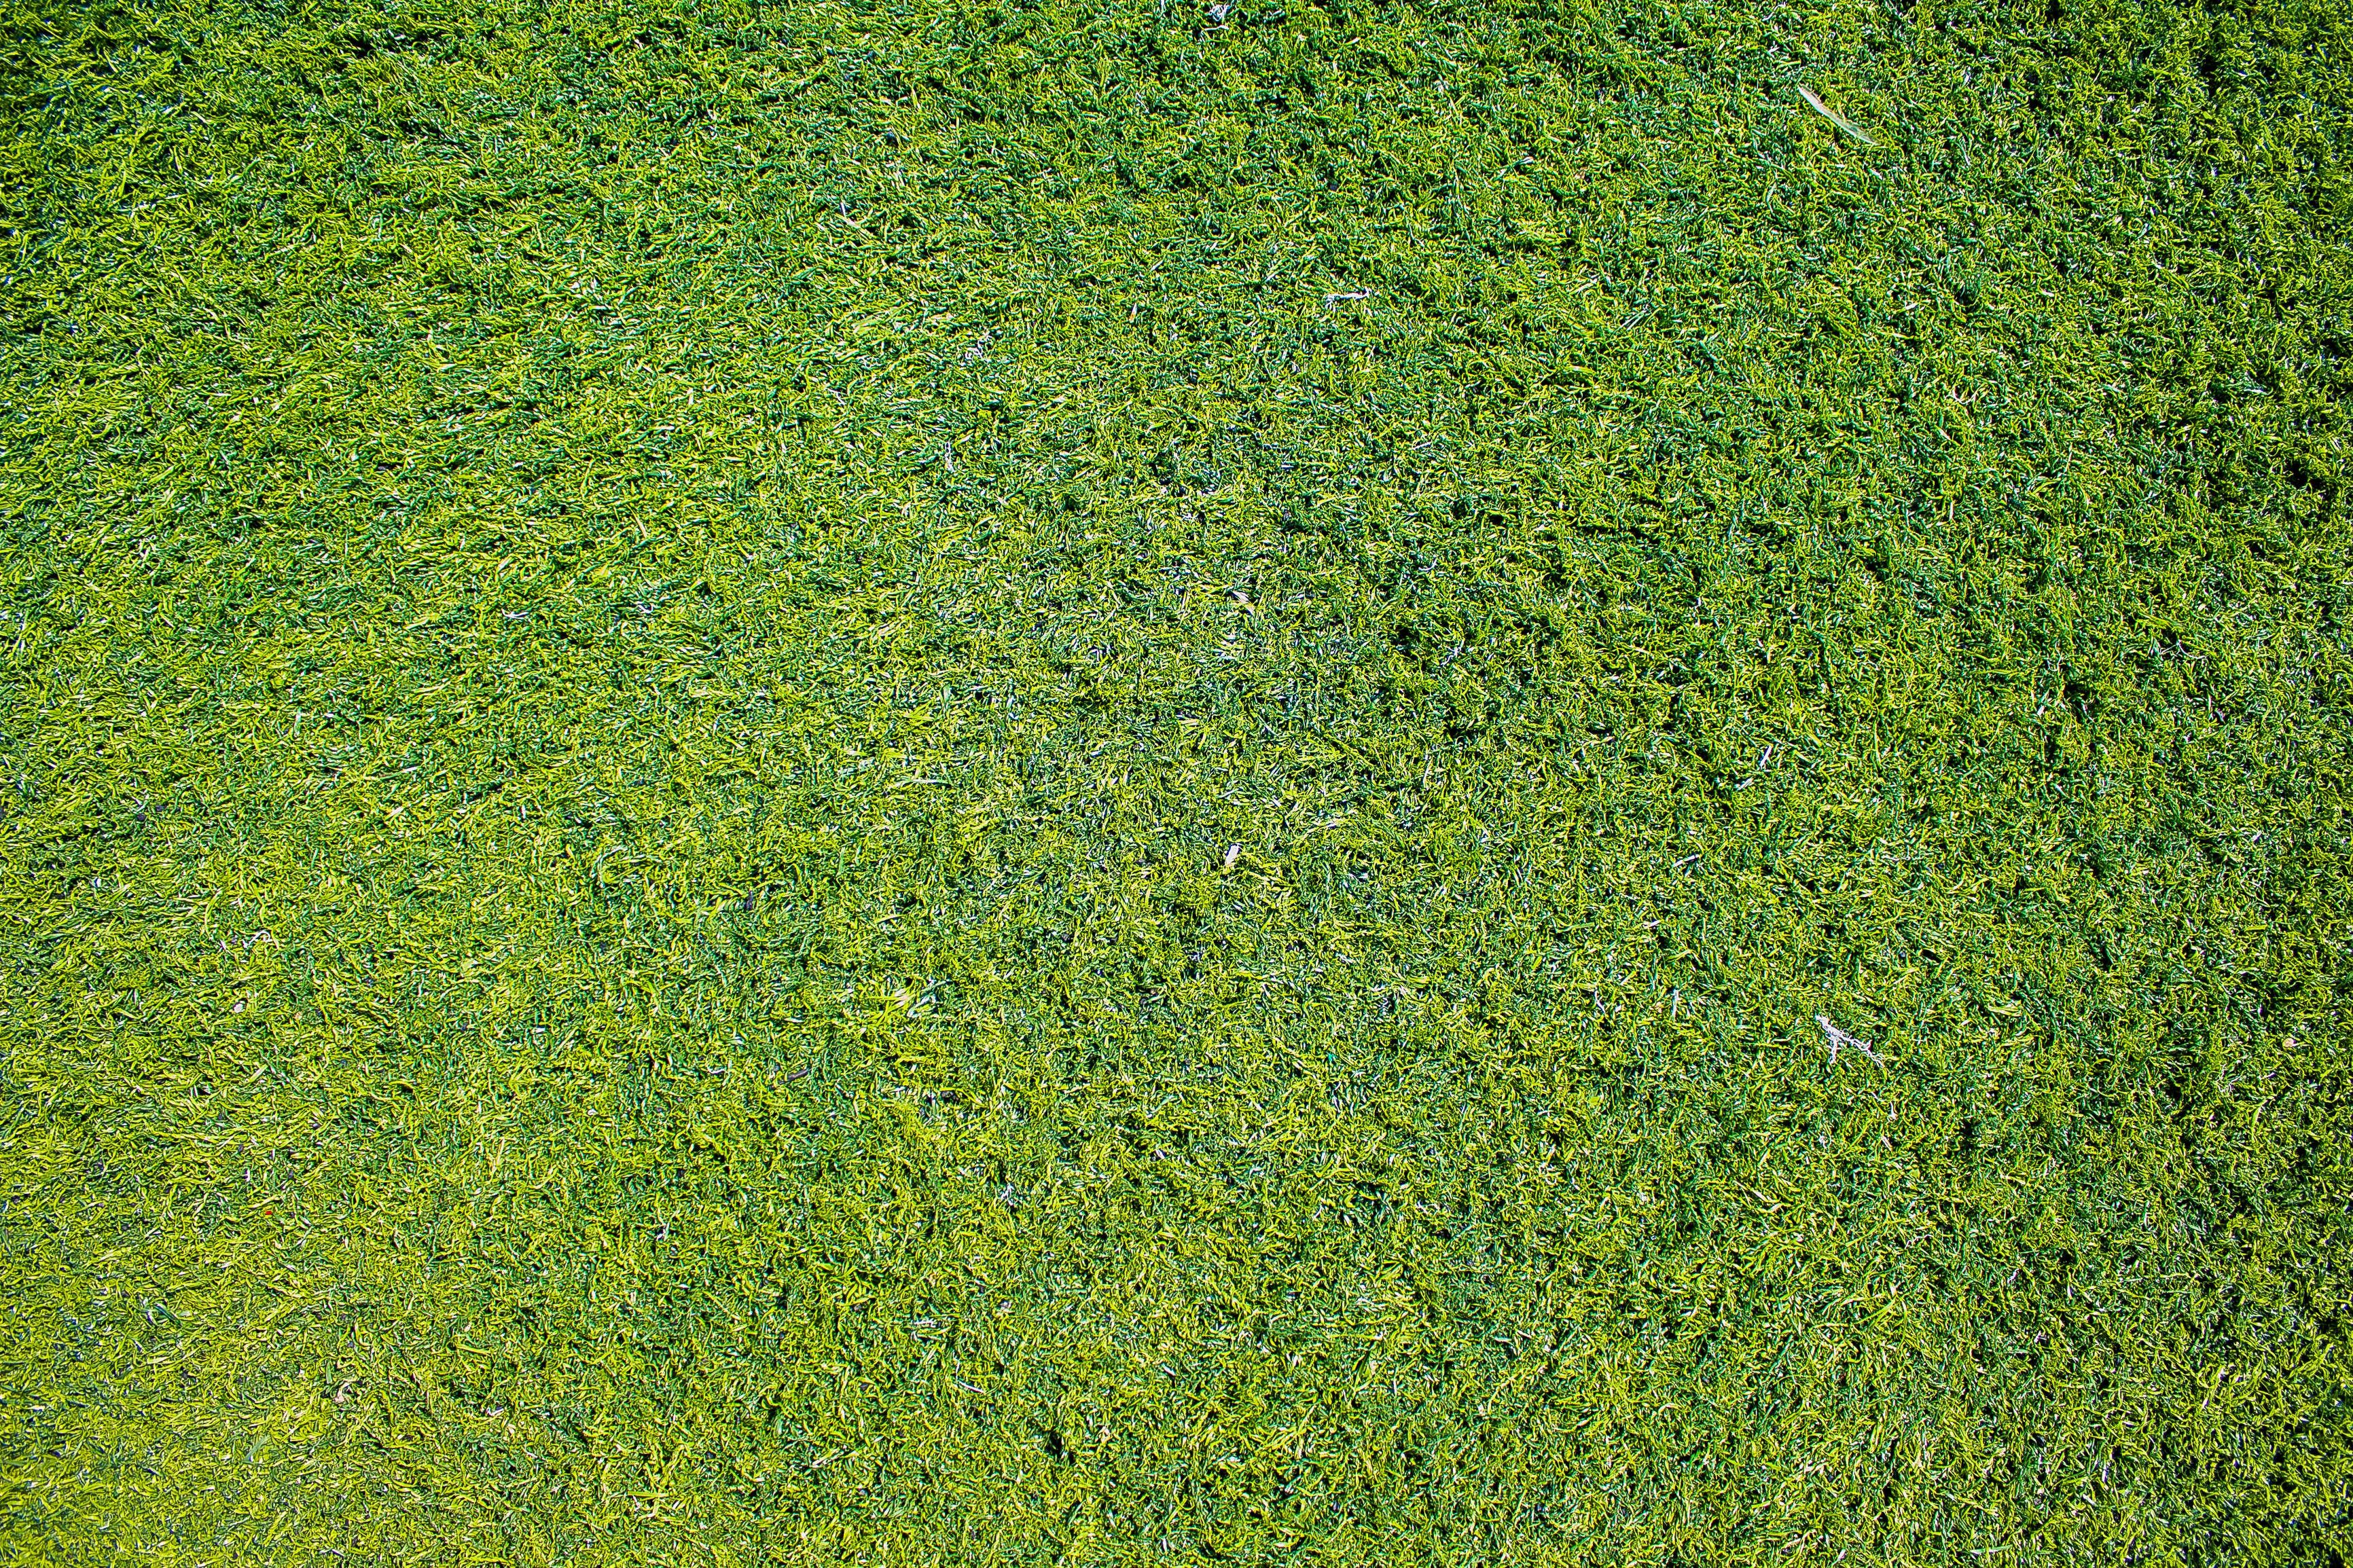 Top View Photo of Grass